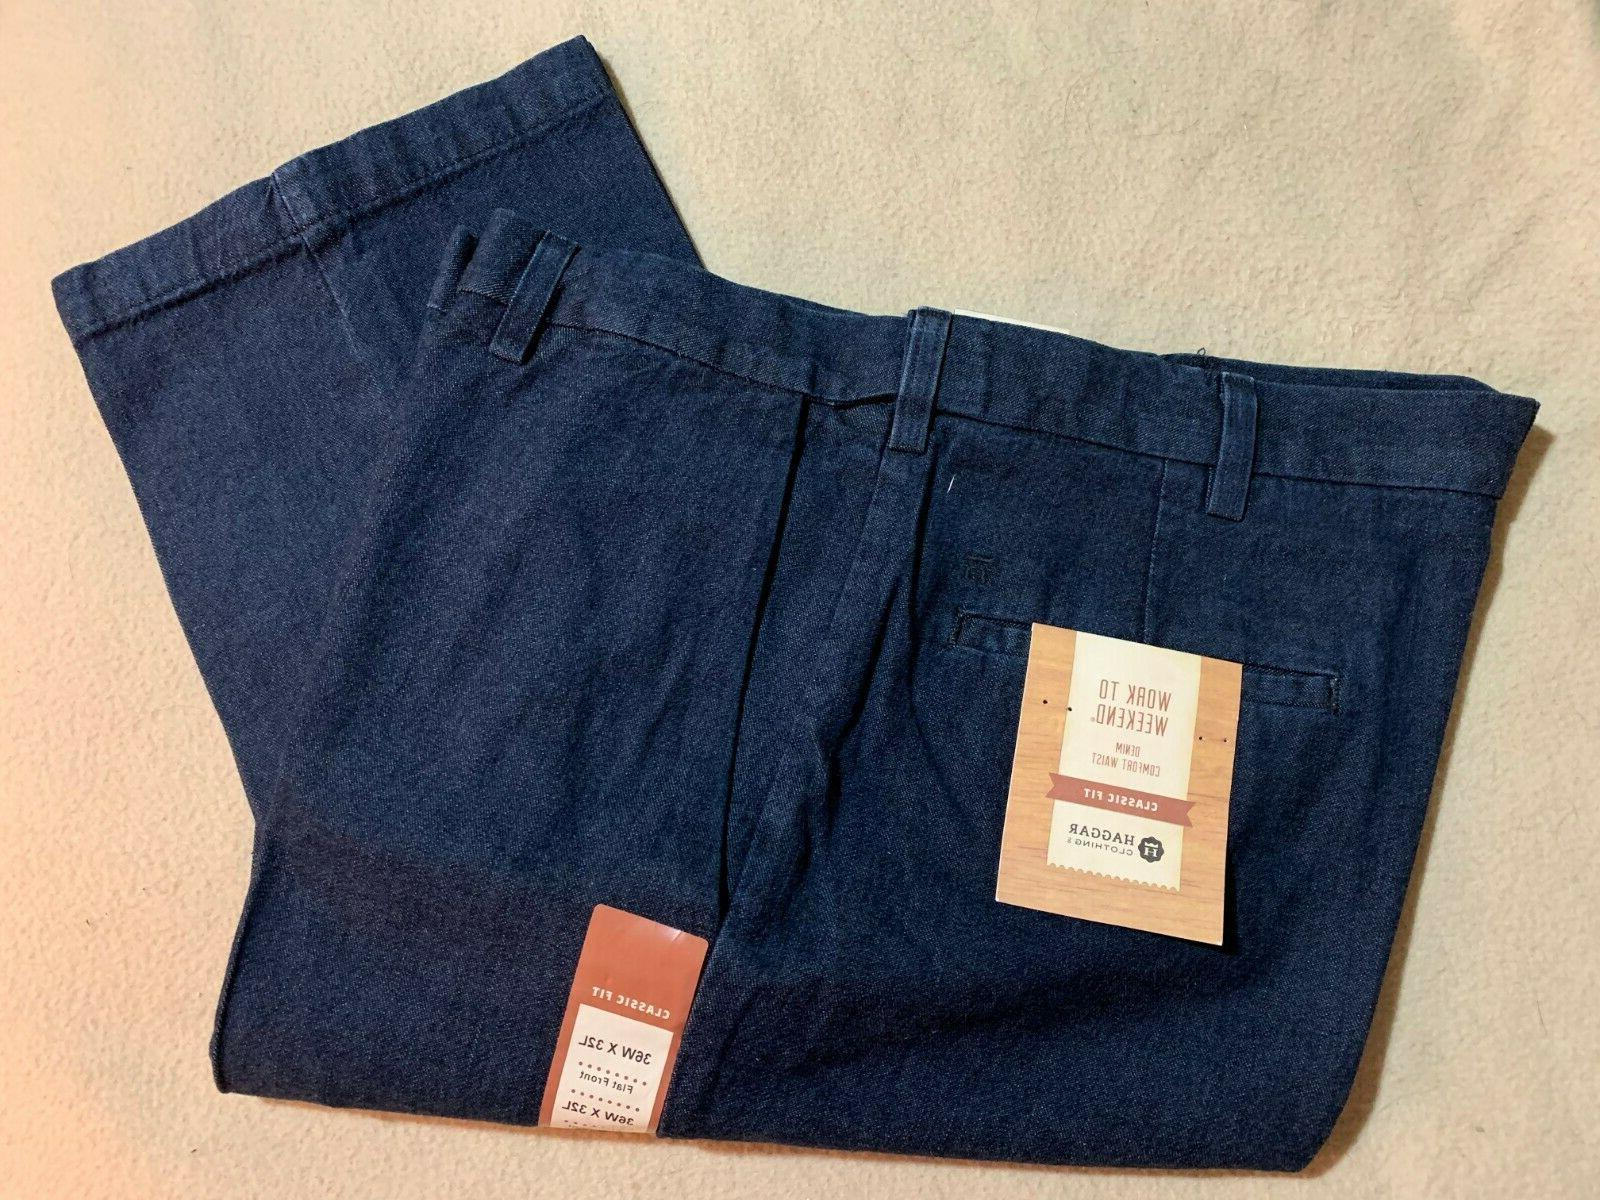 Size 36 x 32 Haggar Trousers Mens New